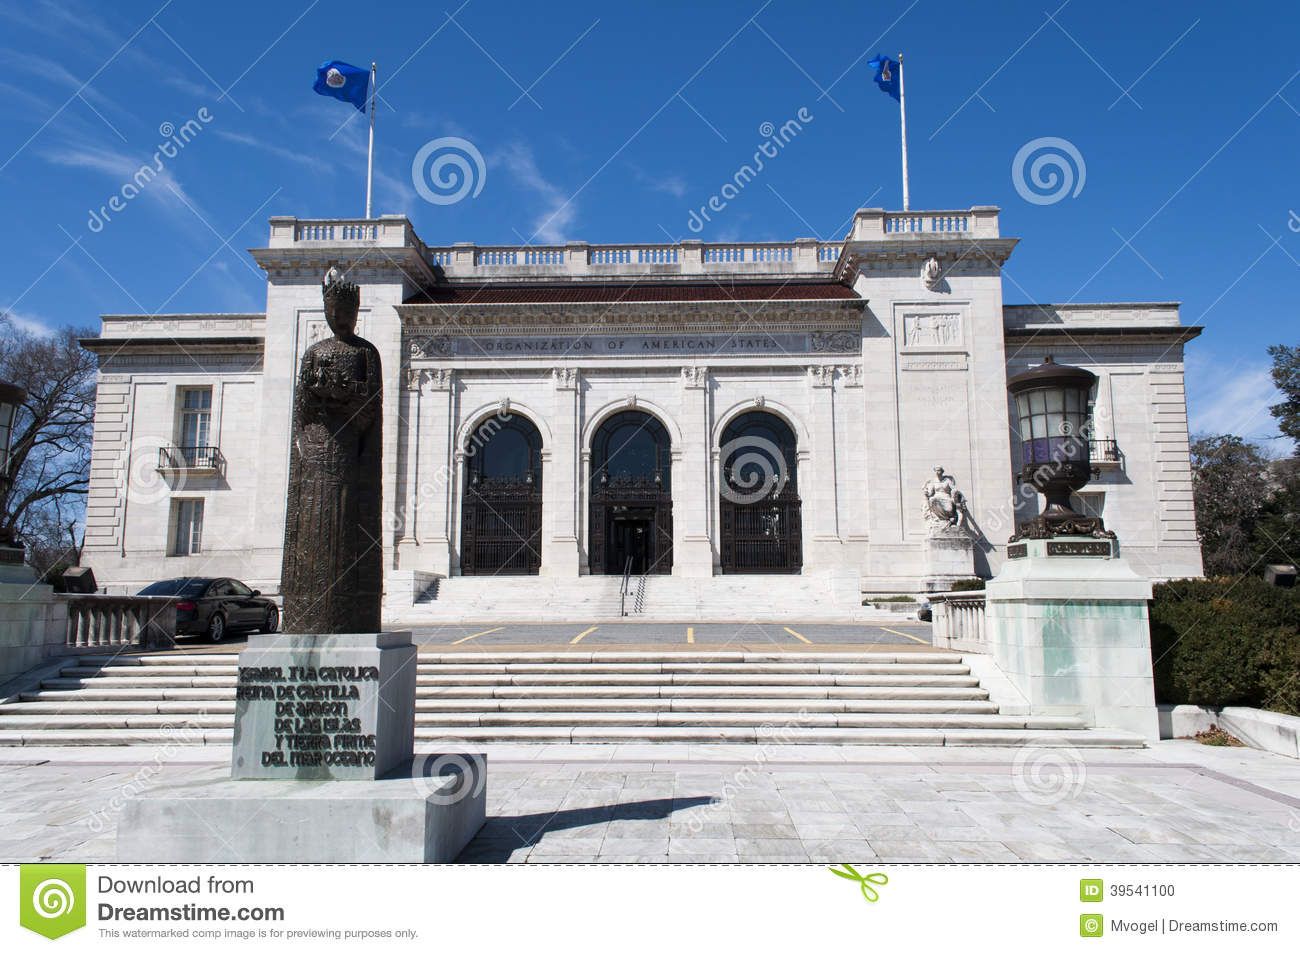 Organization of american states washington dc stock photo for American house construction